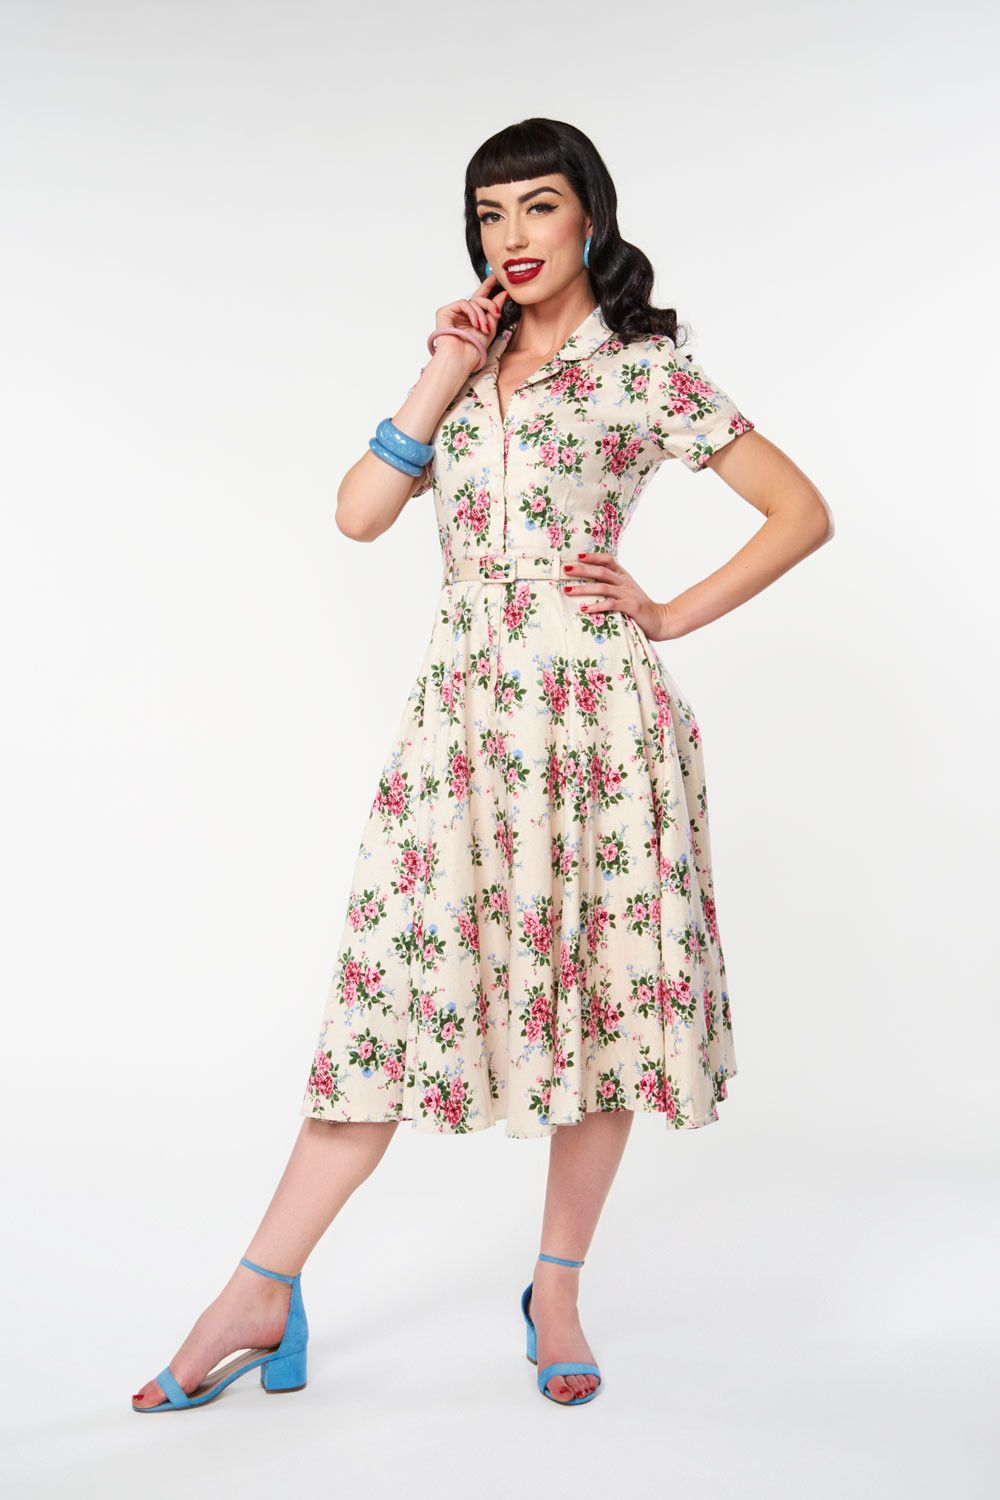 3892d180a583 Caterina 40's Floral Swing Dress by Collectif   Pinup Girl Clothing ...